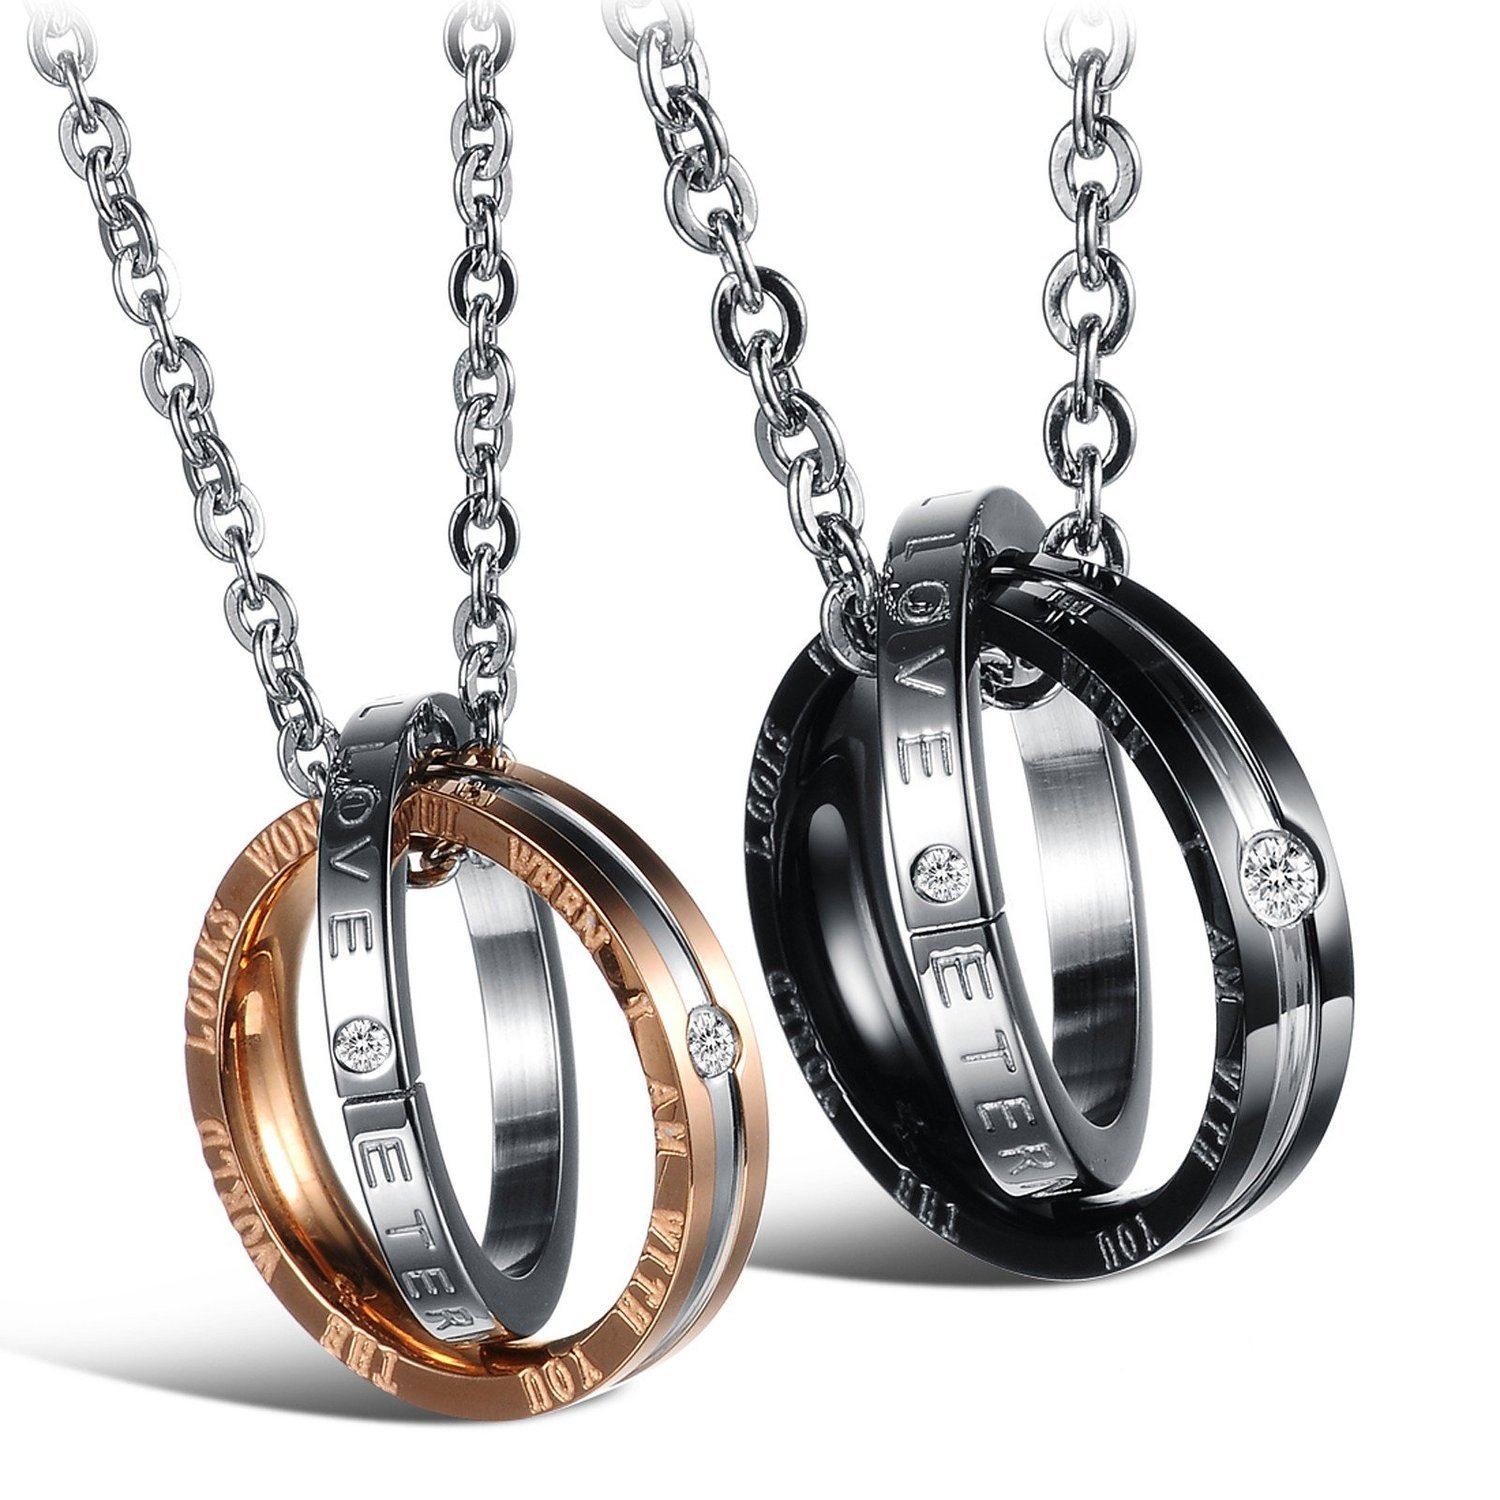 dde2ef2a28 Get Quotations · UHIBROS His & Hers Matching Set Titanium Stainless Steel  Couples Pendant Necklace